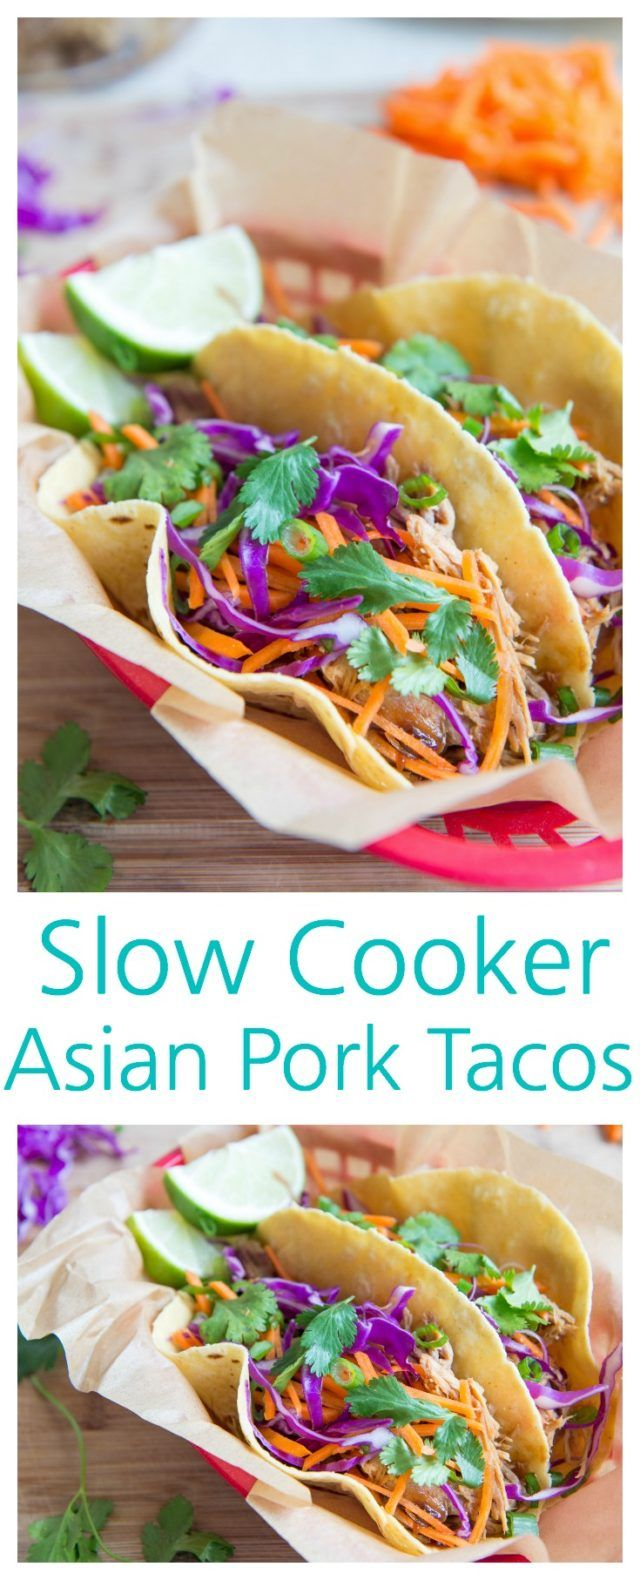 These Slow Cooker Asian Pork Tacos are fantastic for weeknight dinners. The pork only needs five minutes of prep before cooking low and slow in the crockpot, then the meat is shredded for taco time!